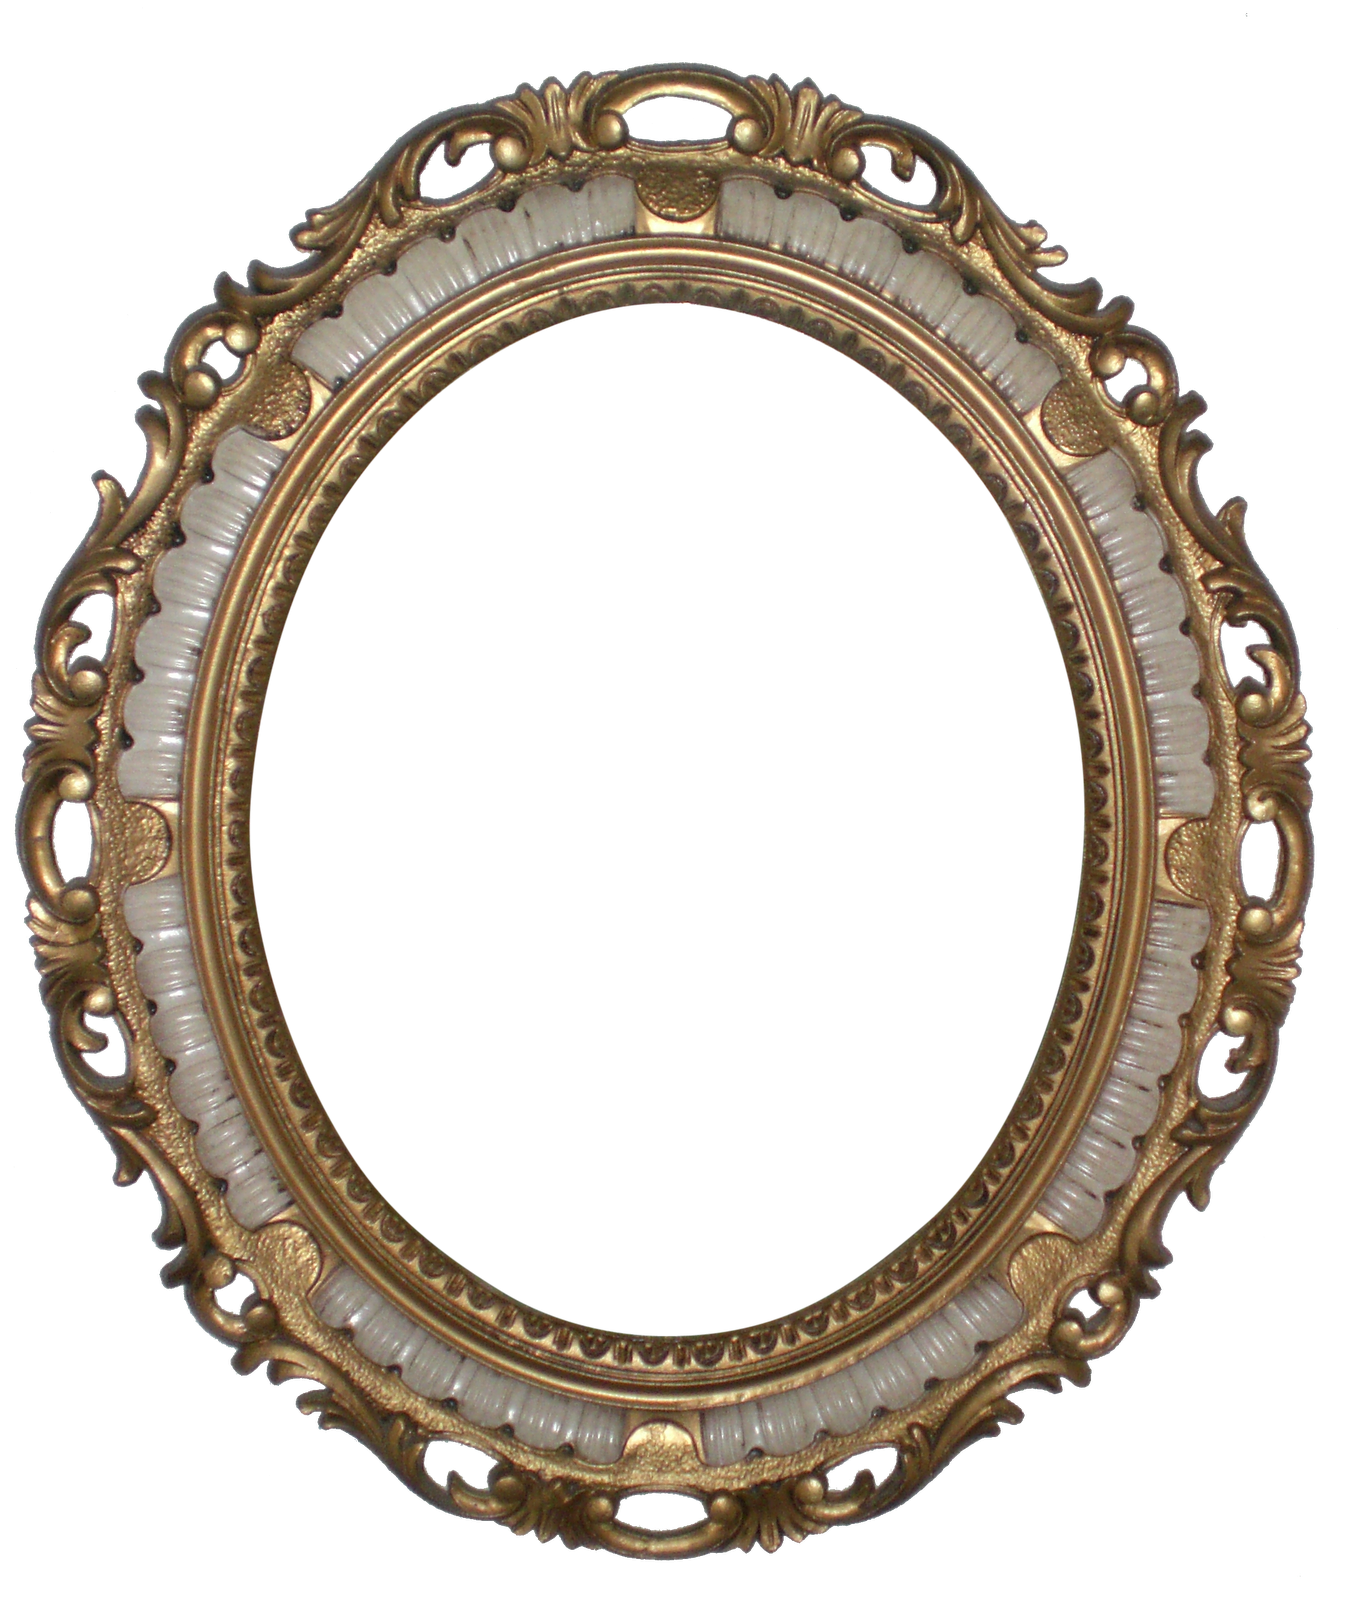 Mirror clipart large. Png image purepng free